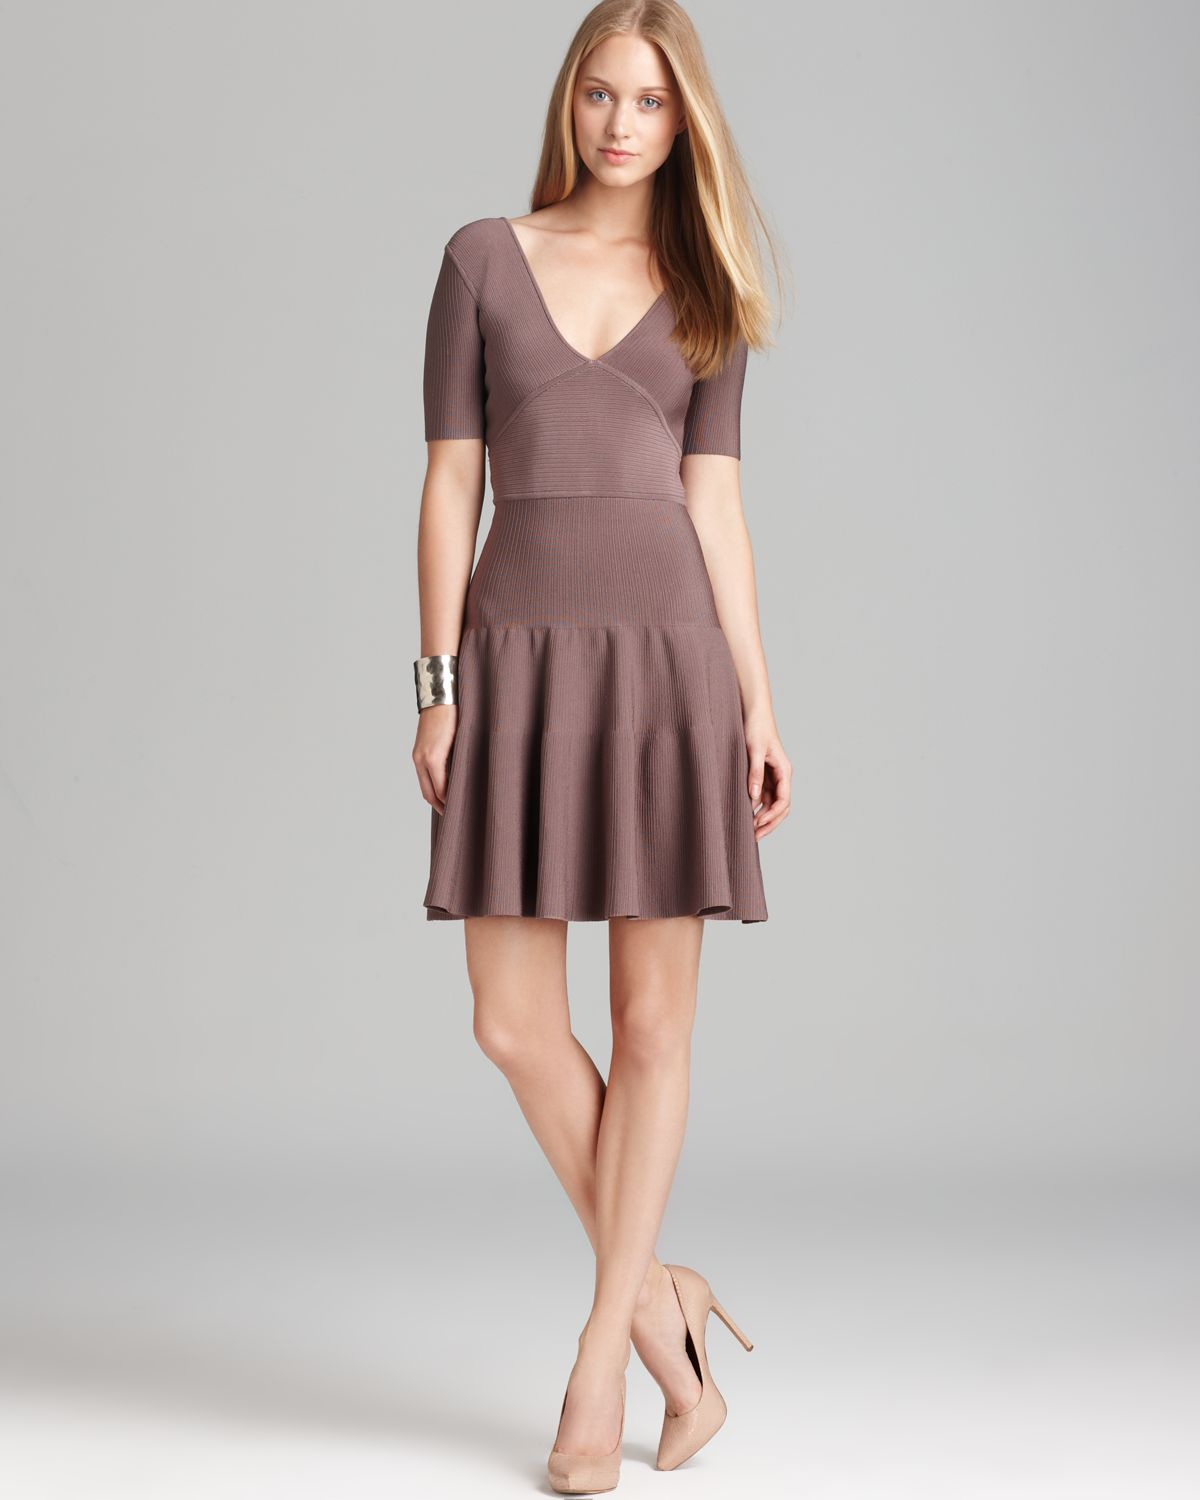 Lyst - Issa Fit and Flare Dress Short Sleeve in Brown fa89d6f740bf